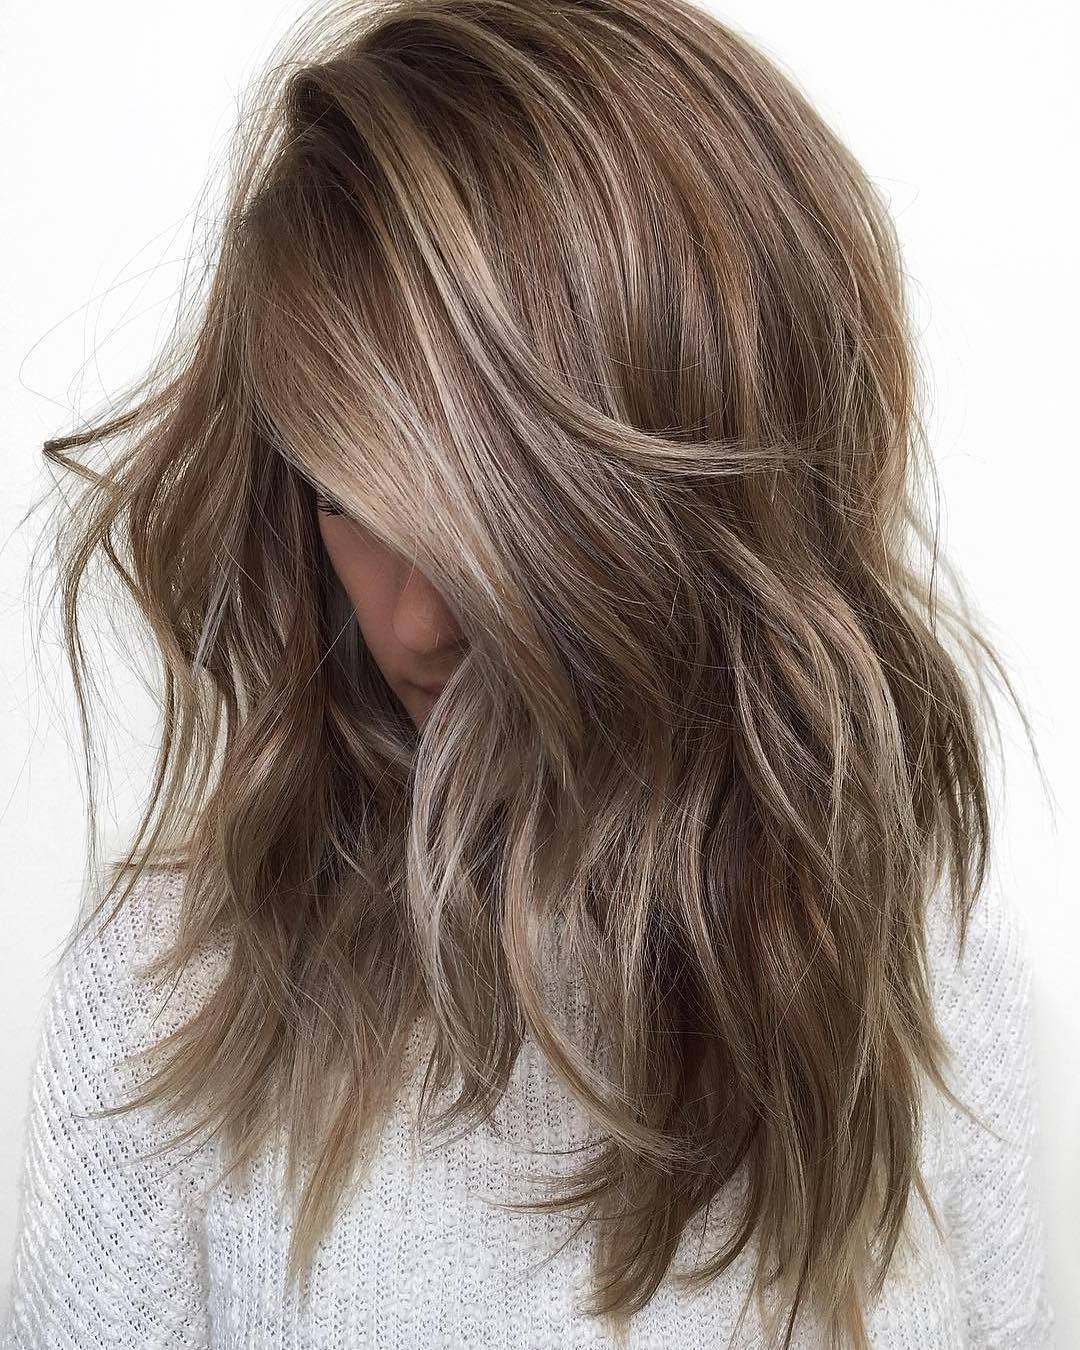 2017 Ombre Medium Hairstyles Throughout 10 Balayage Ombre Hair Styles For Shoulder Length Hair, Women (View 3 of 20)